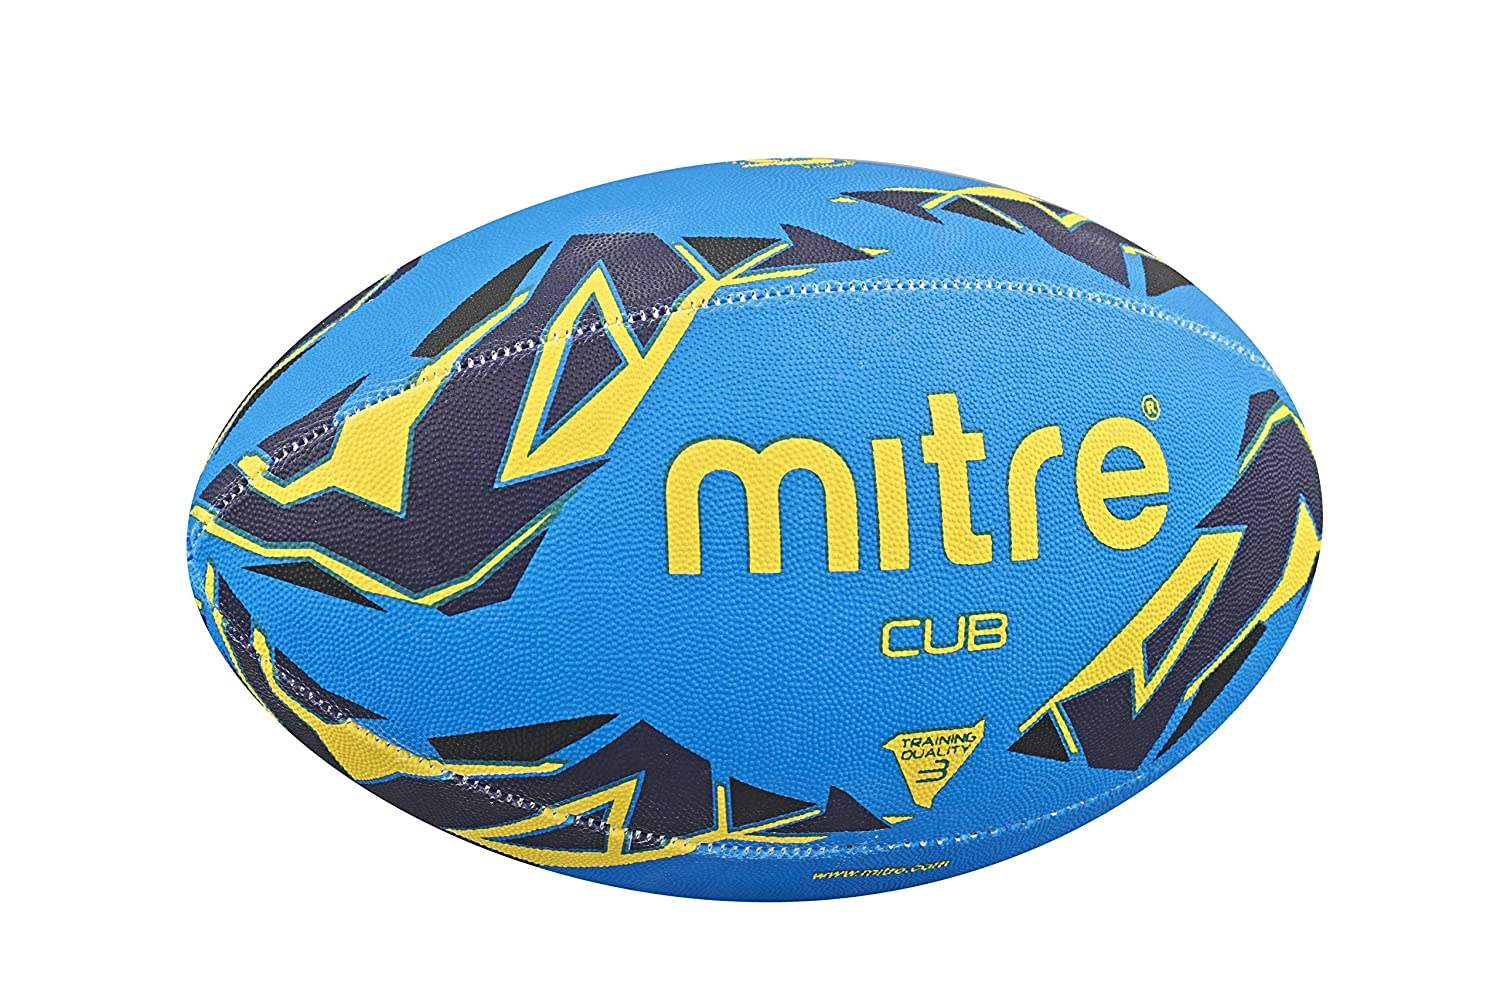 Mitre Cub Training Rugby Ball Size 3 BB1154